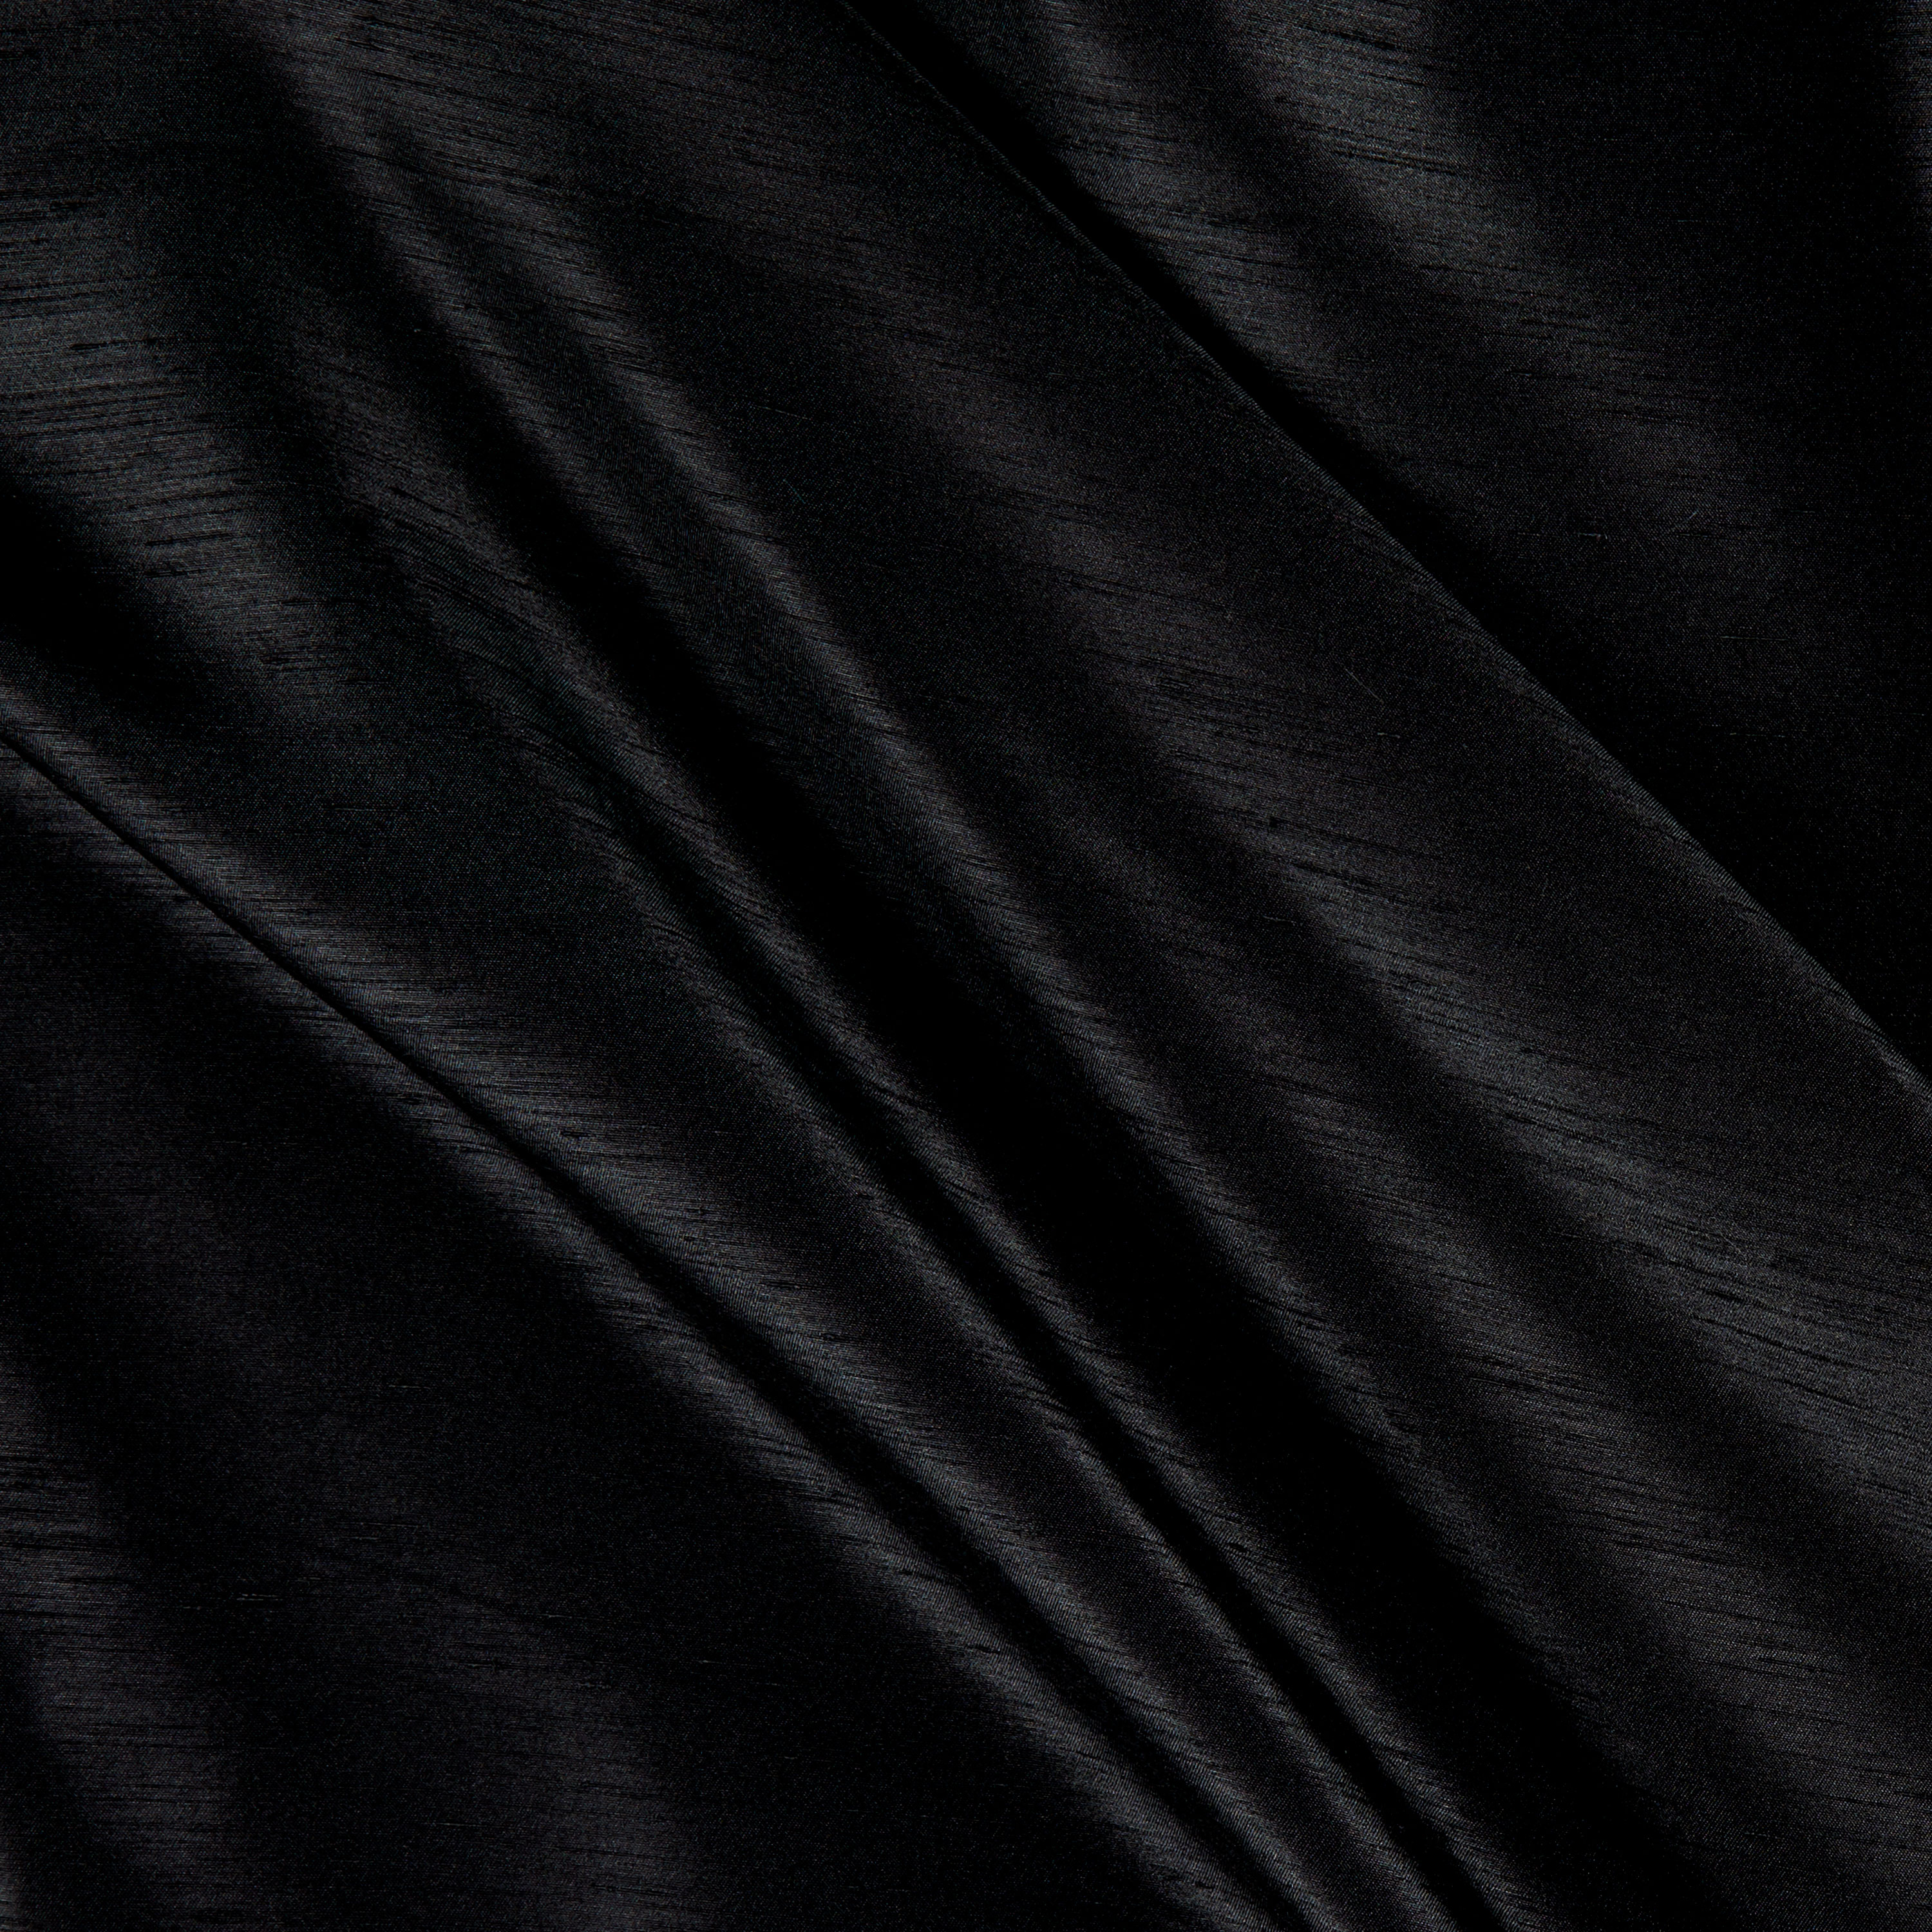 Shantung Sateen Black Fabric